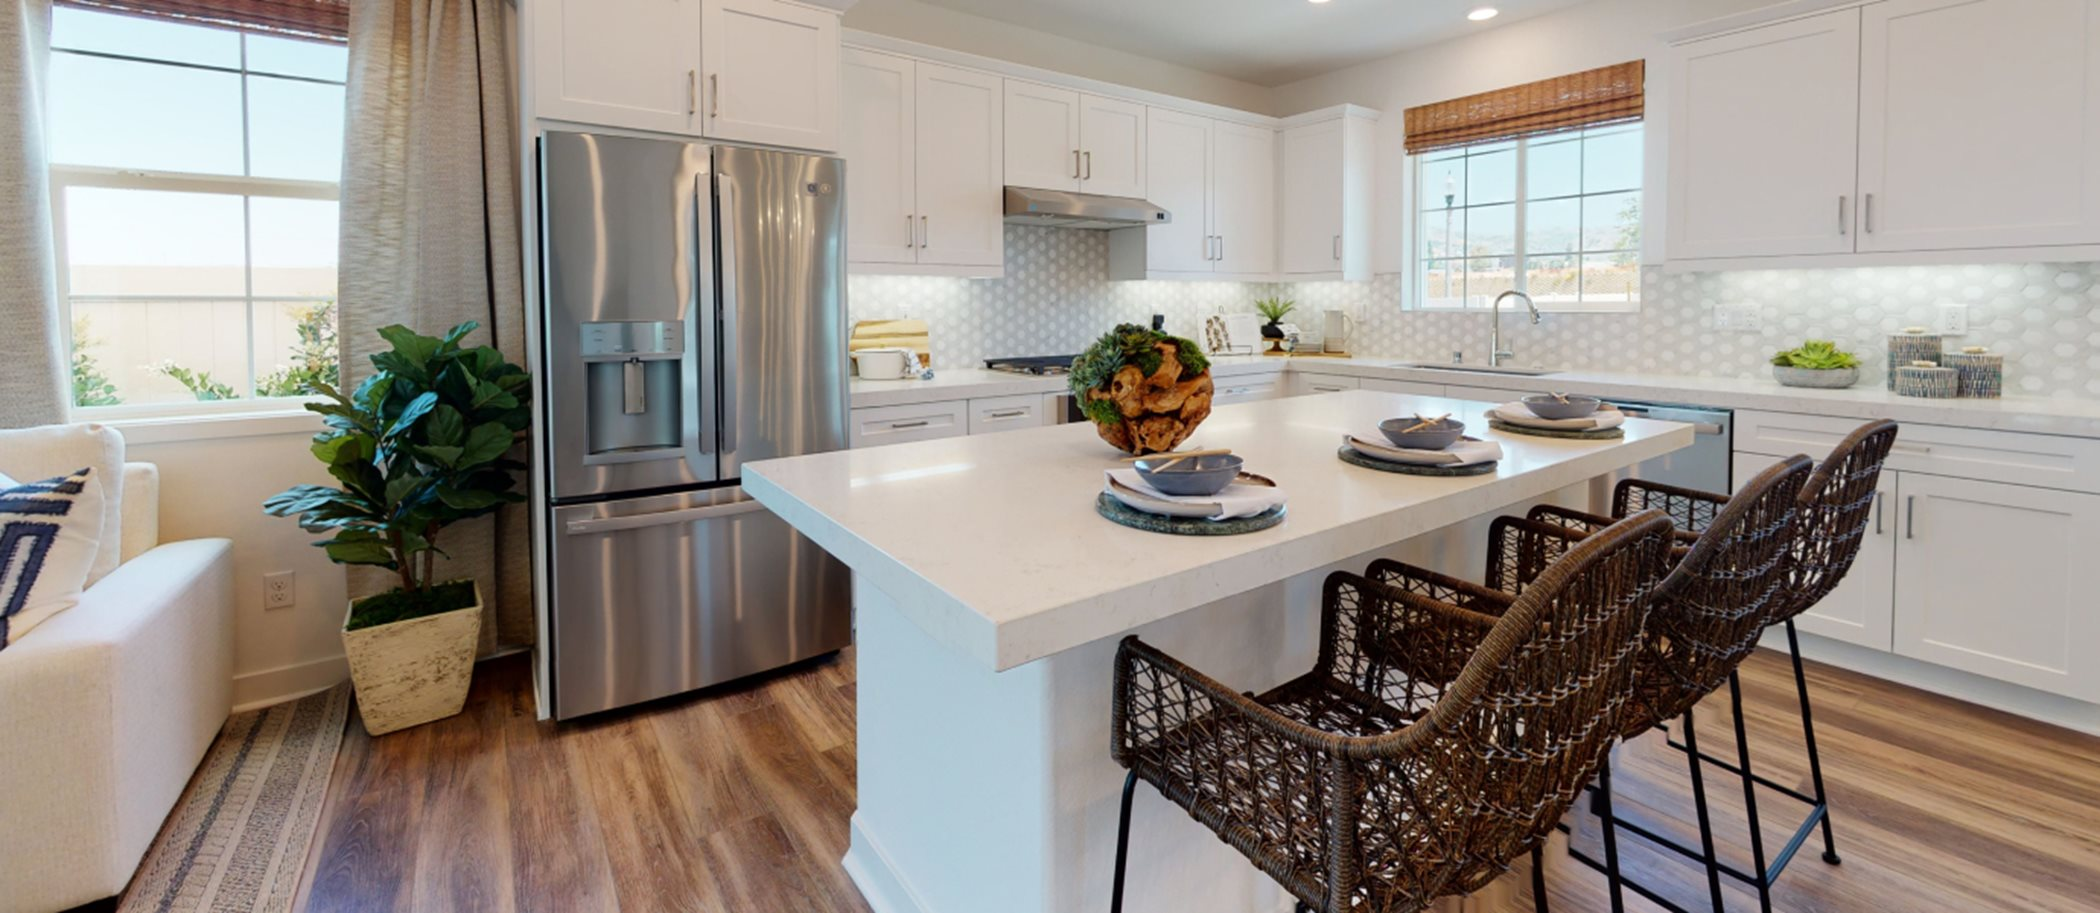 The Groves Harmony Residence 2 Kitchen